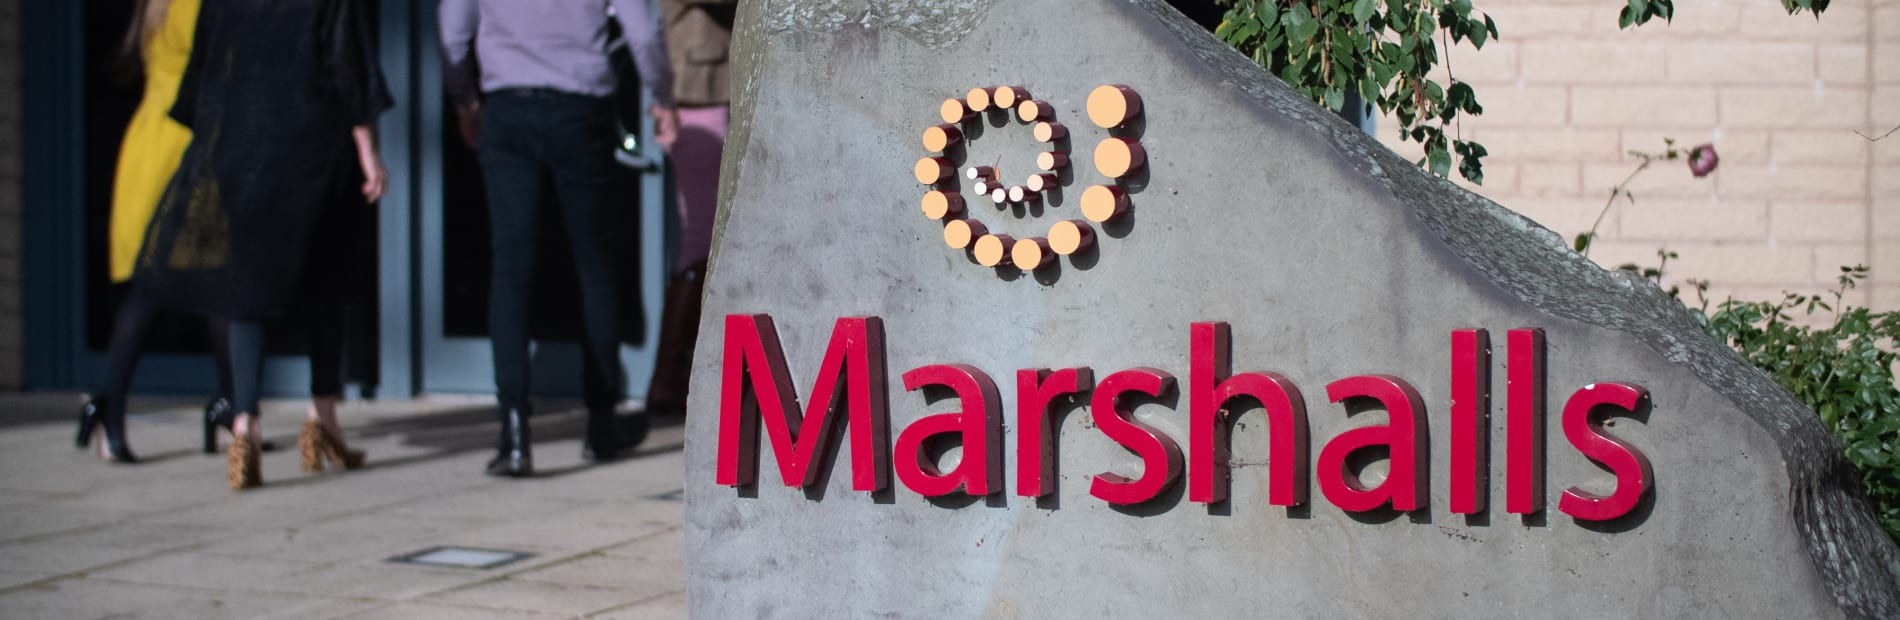 Marshalls logo in front of an office building.